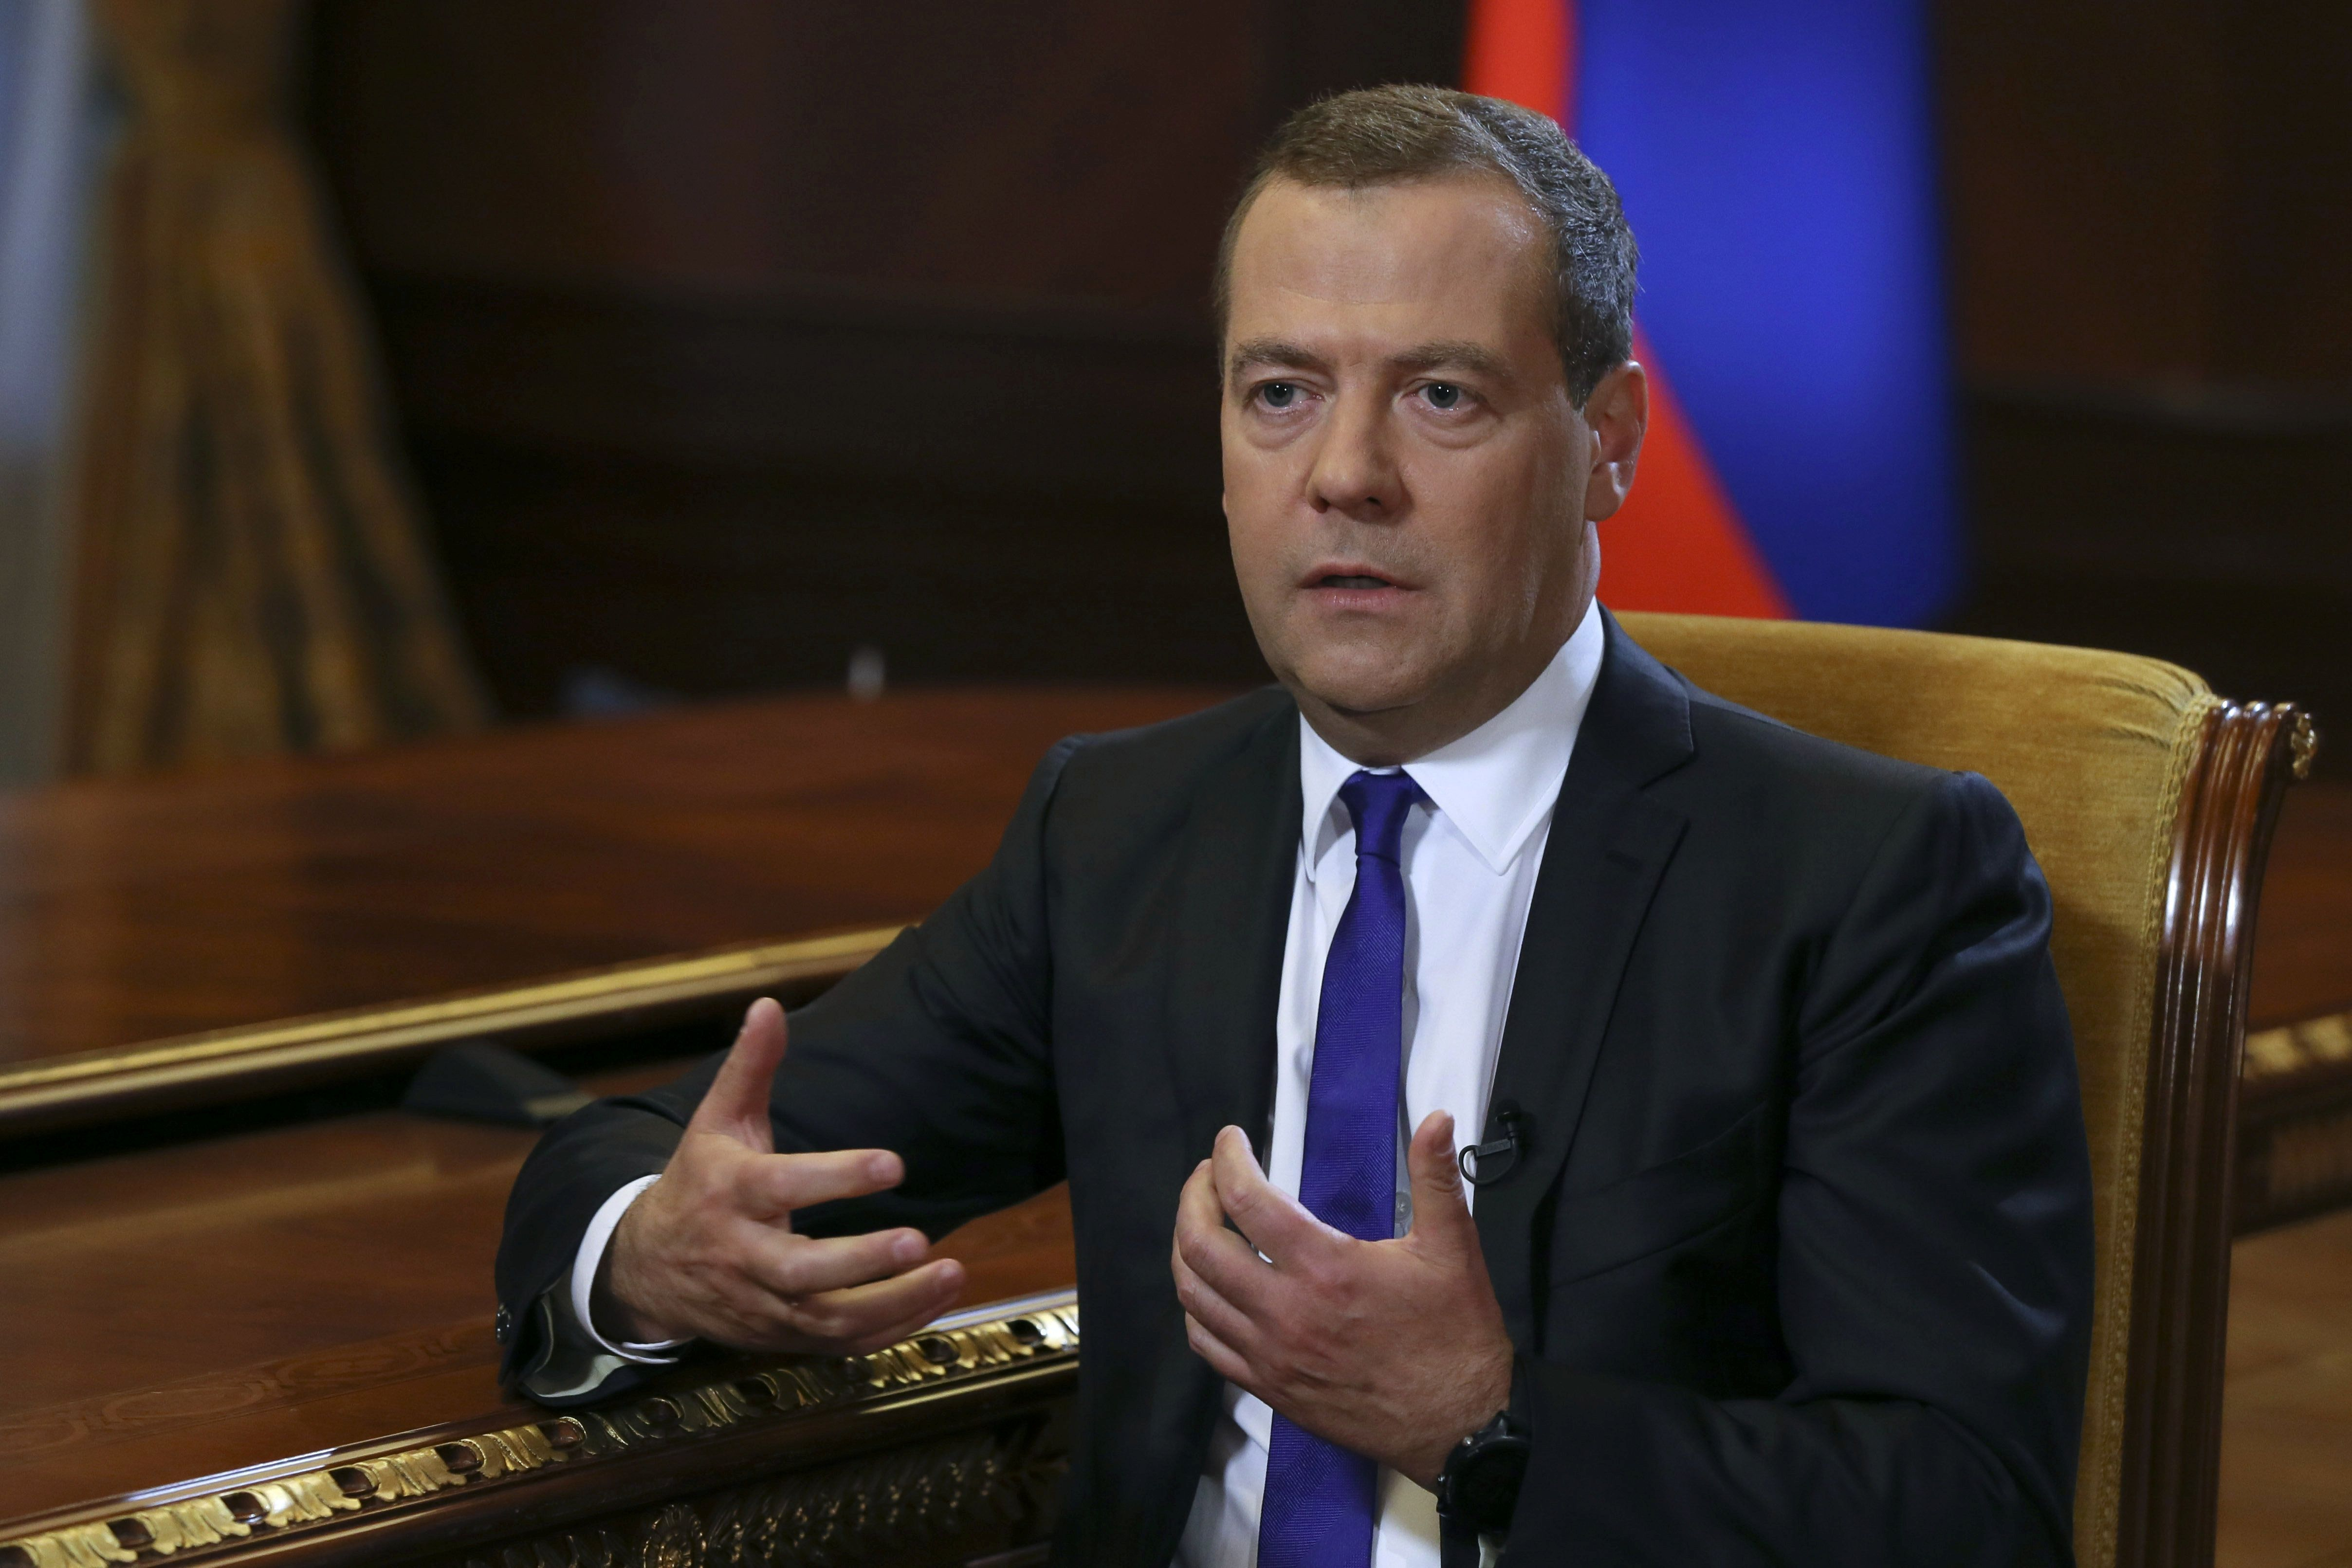 Russian PM: Any U.S. Effort To Curb Russian Banking Will Be 'Declaration Of Economic War'